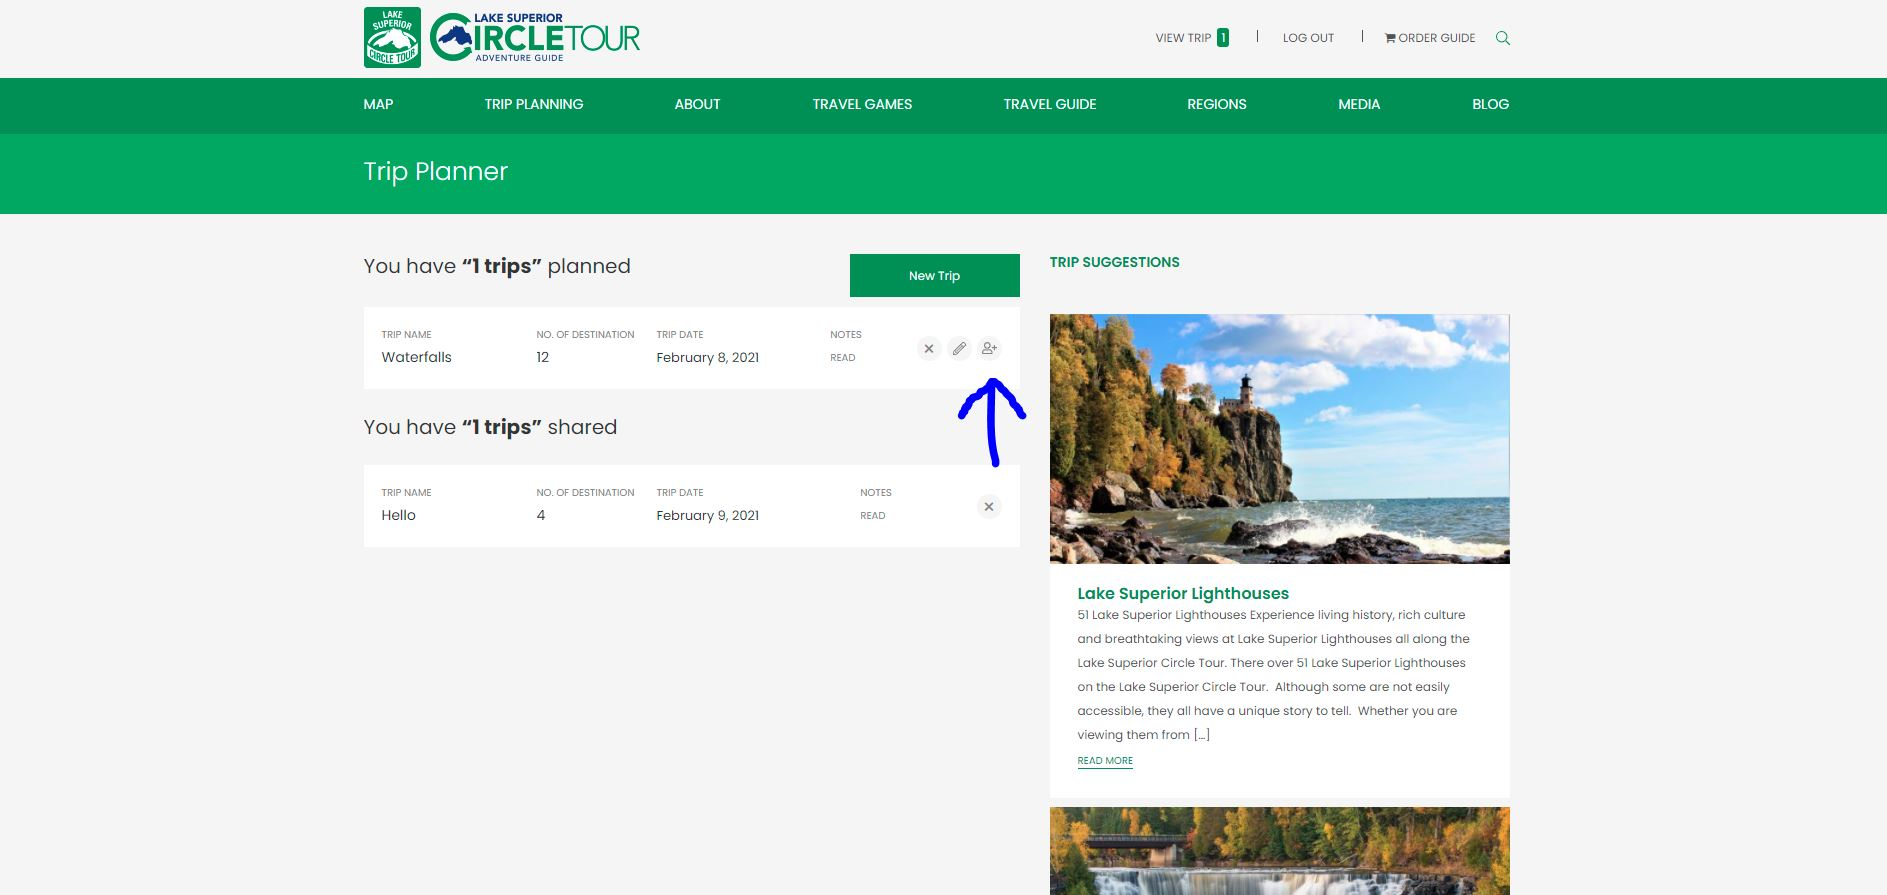 Lake Superior Circle Tour Trip Planner - Share your Trip